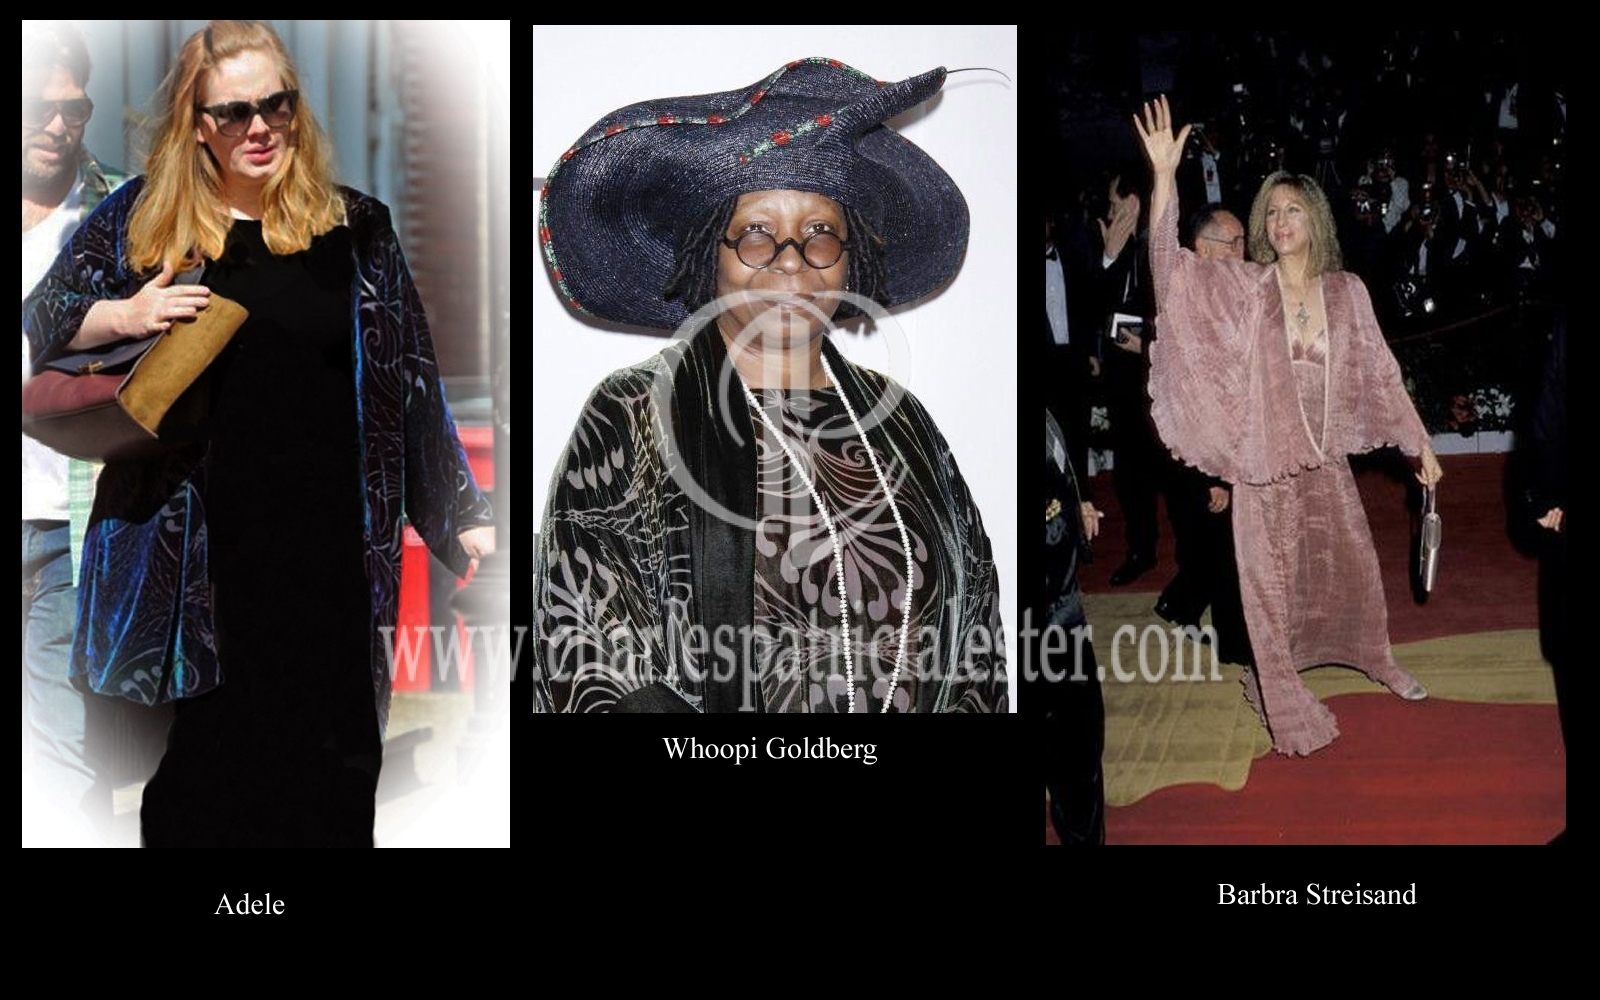 Adele, Whoopi Goldberg and Barbra Streisand